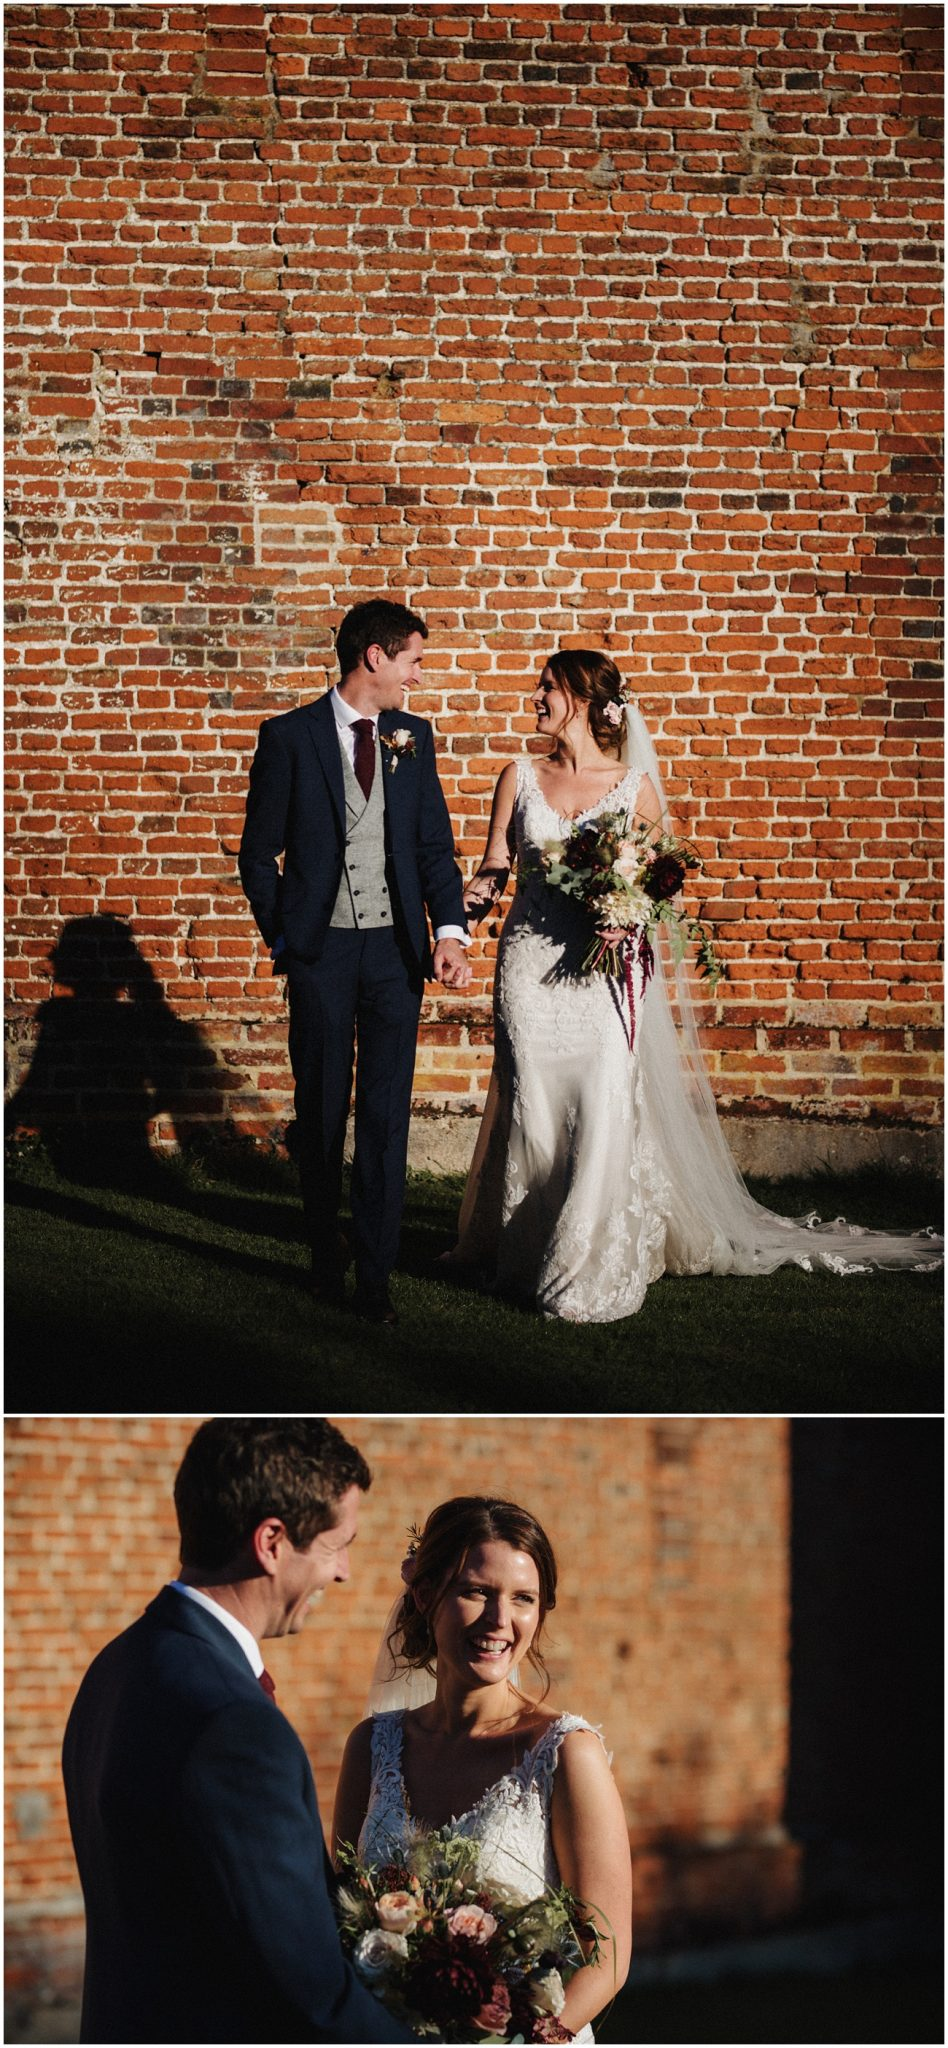 Bride and groom laughing by the red brick barn